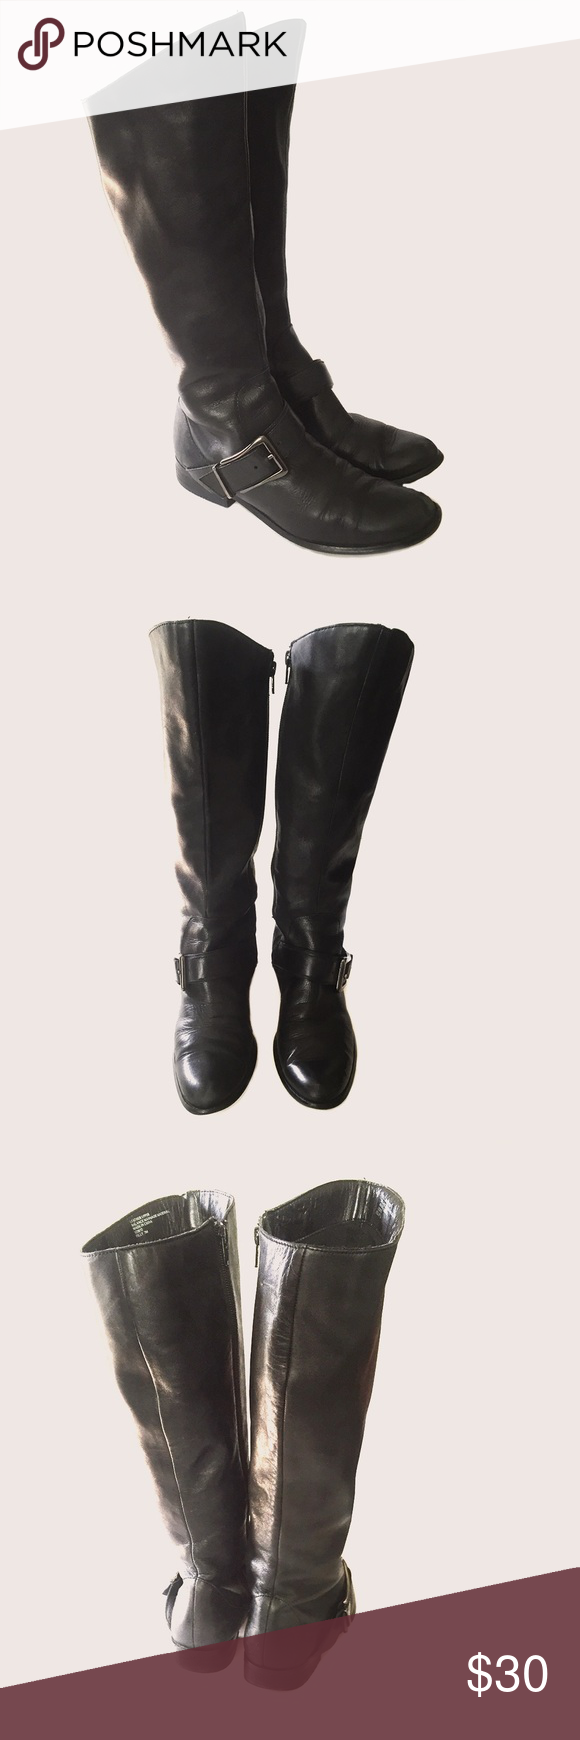 Leather High Calf Boots Normal wear and tear to front toes. Overall still in good condition. Super comfortable! +Leather Upper +Size: 7 ❤️ No trade inquiries please. Thank You:) Shoes Heeled Boots